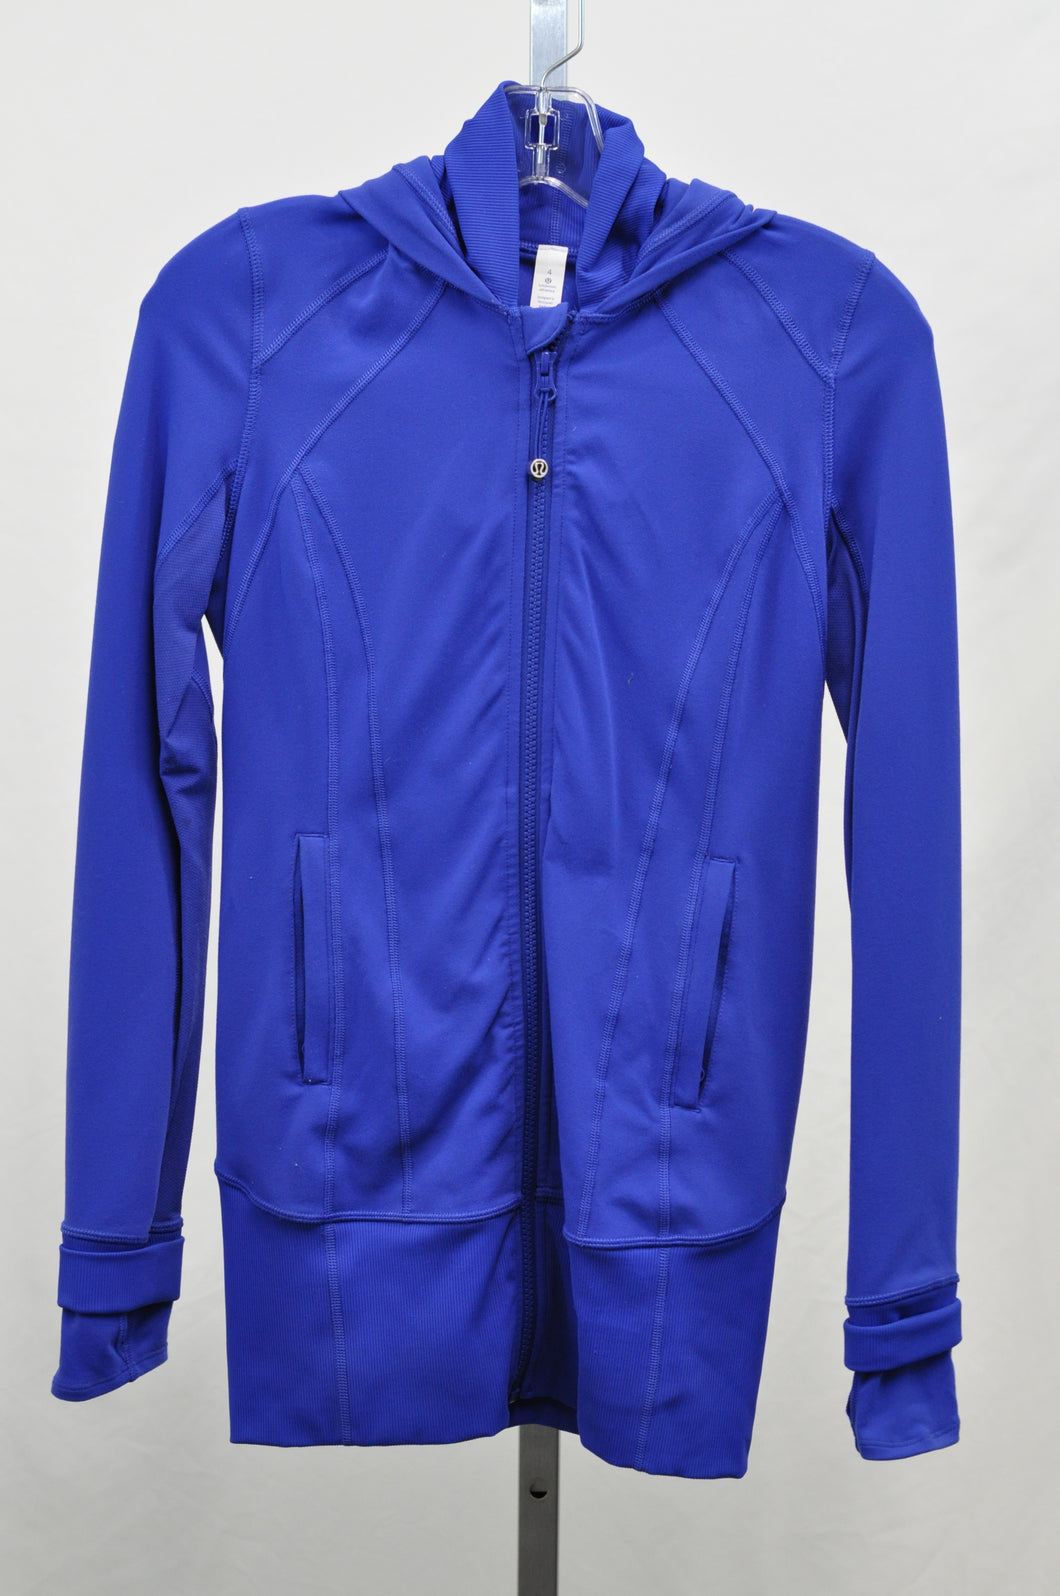 lululemon Royal Blue Track Jacket